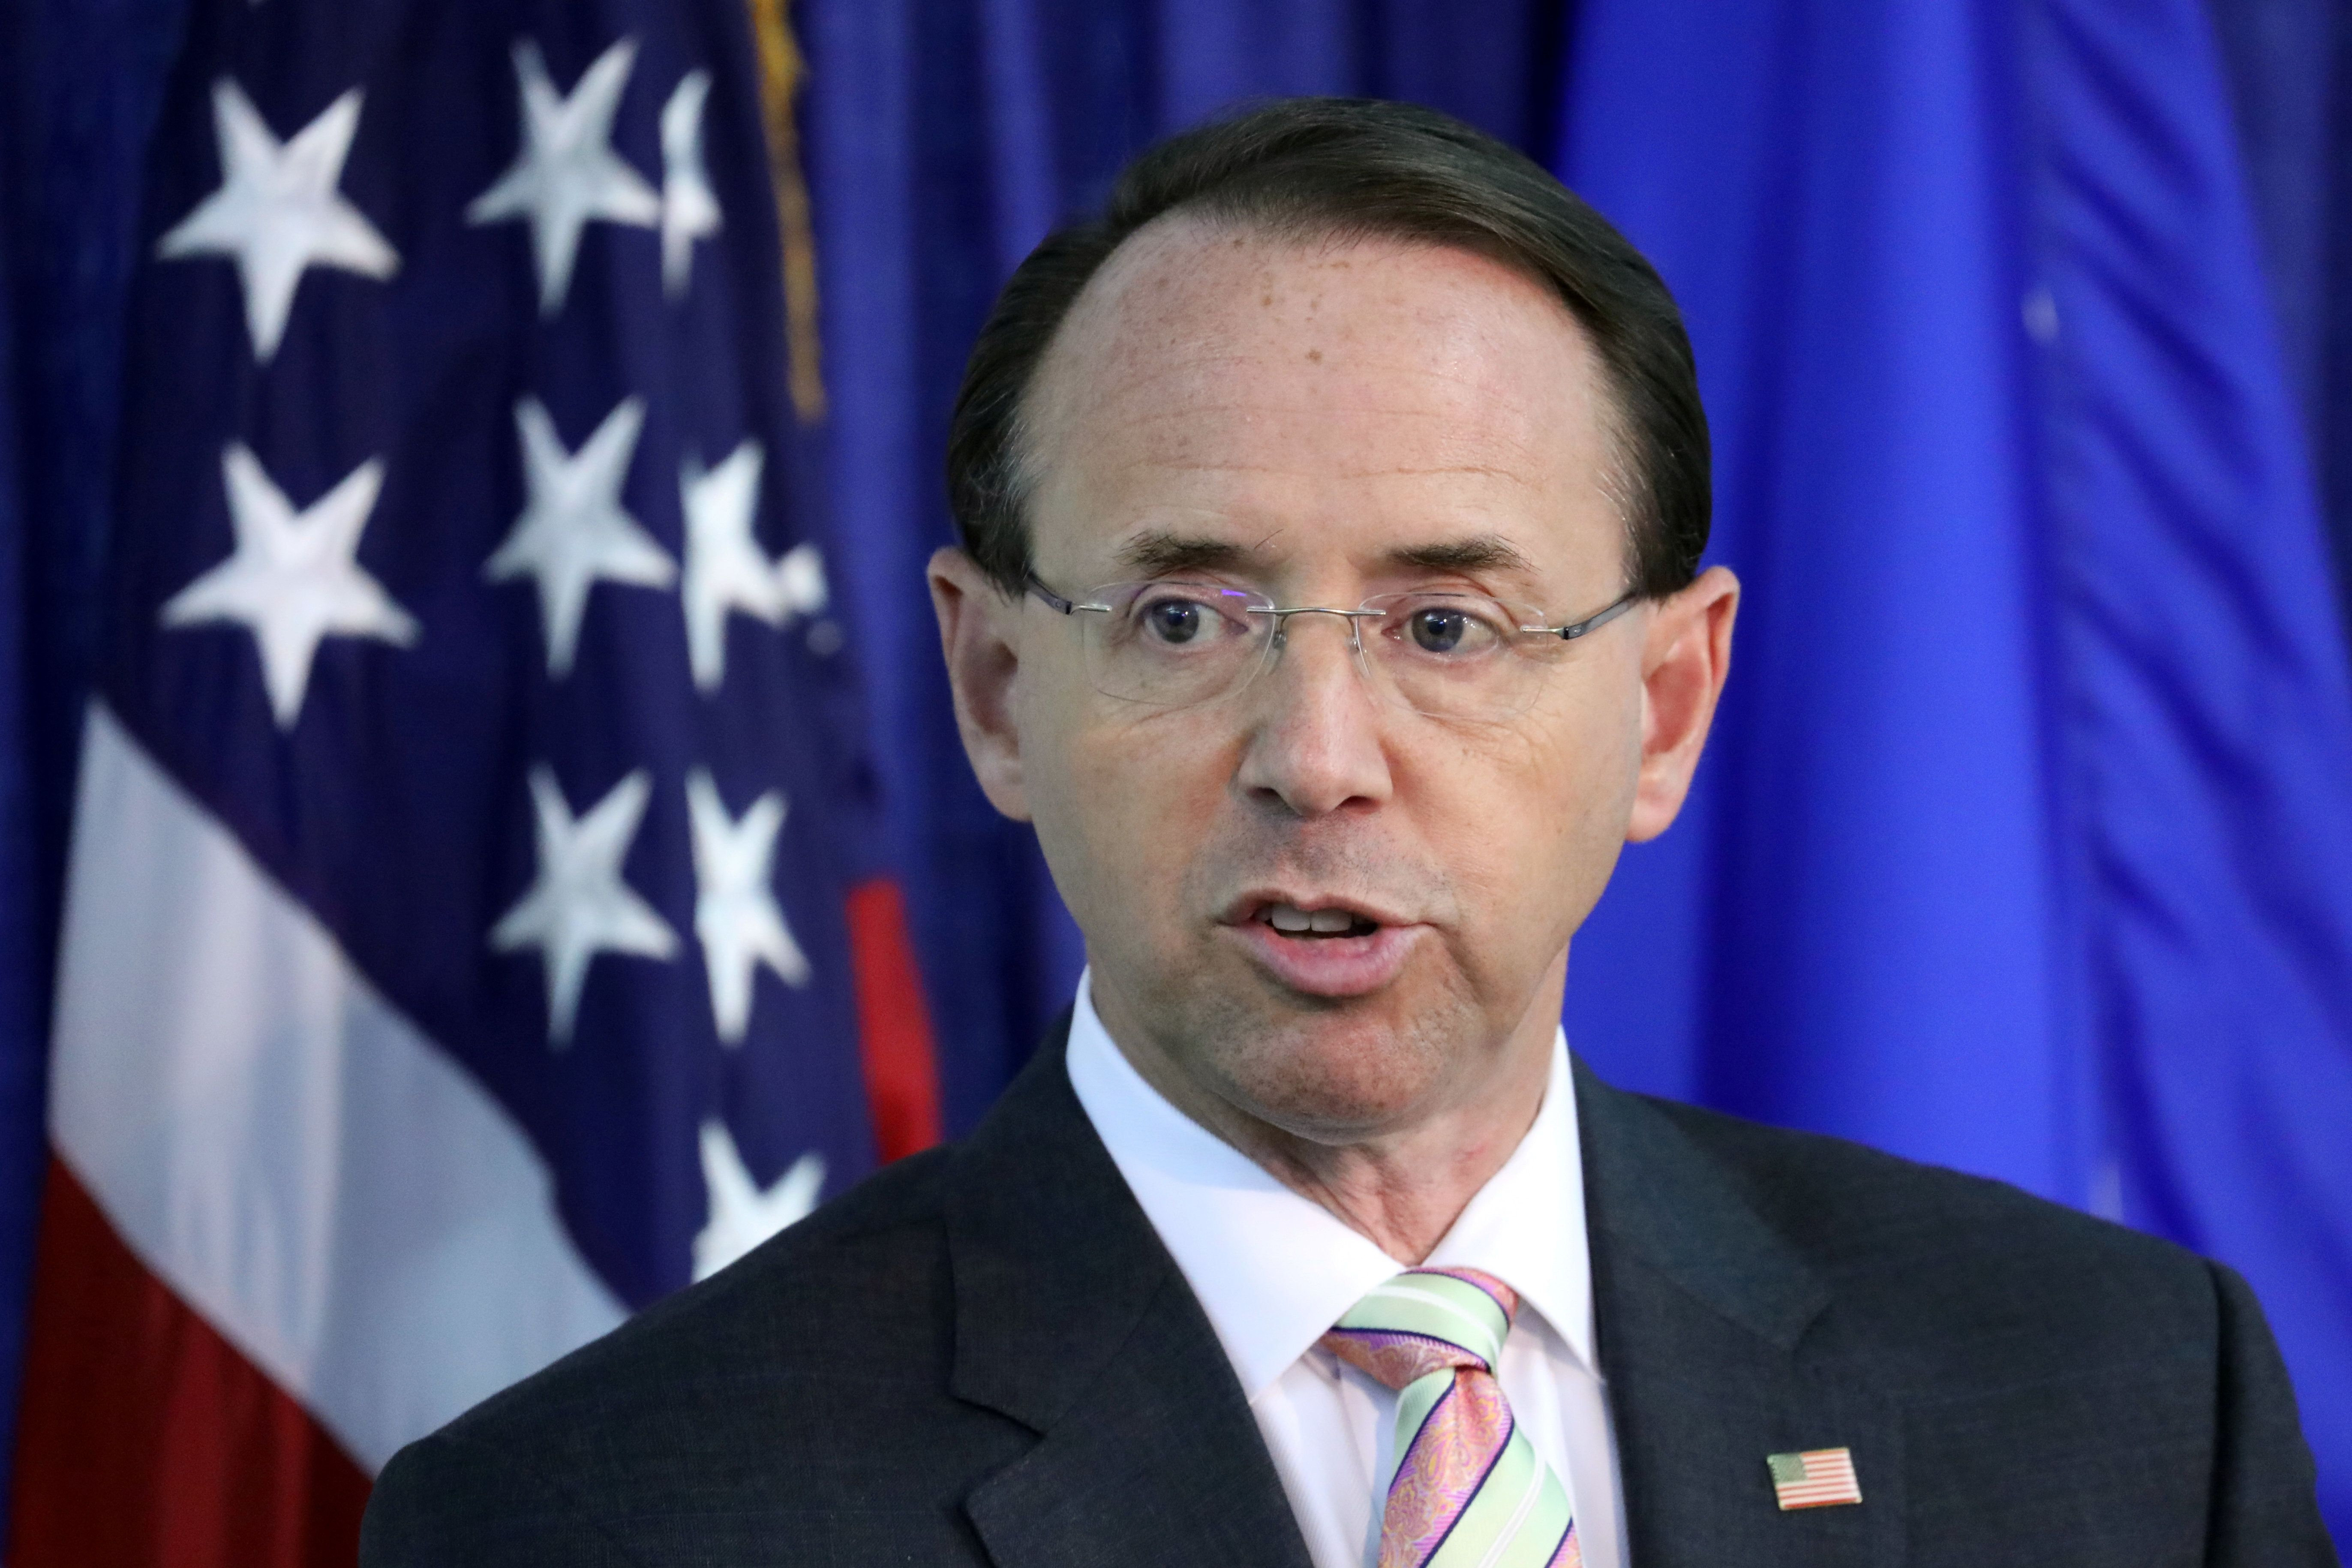 """Deputy U.S. Attorney General Rod Rosenstein speaks during the Bureau of Justice Assistance's rollout for the """"Fentanyl: The Real Deal"""" training video in Washington, U.S., August 30, 2018. REUTERS/Chris Wattie"""